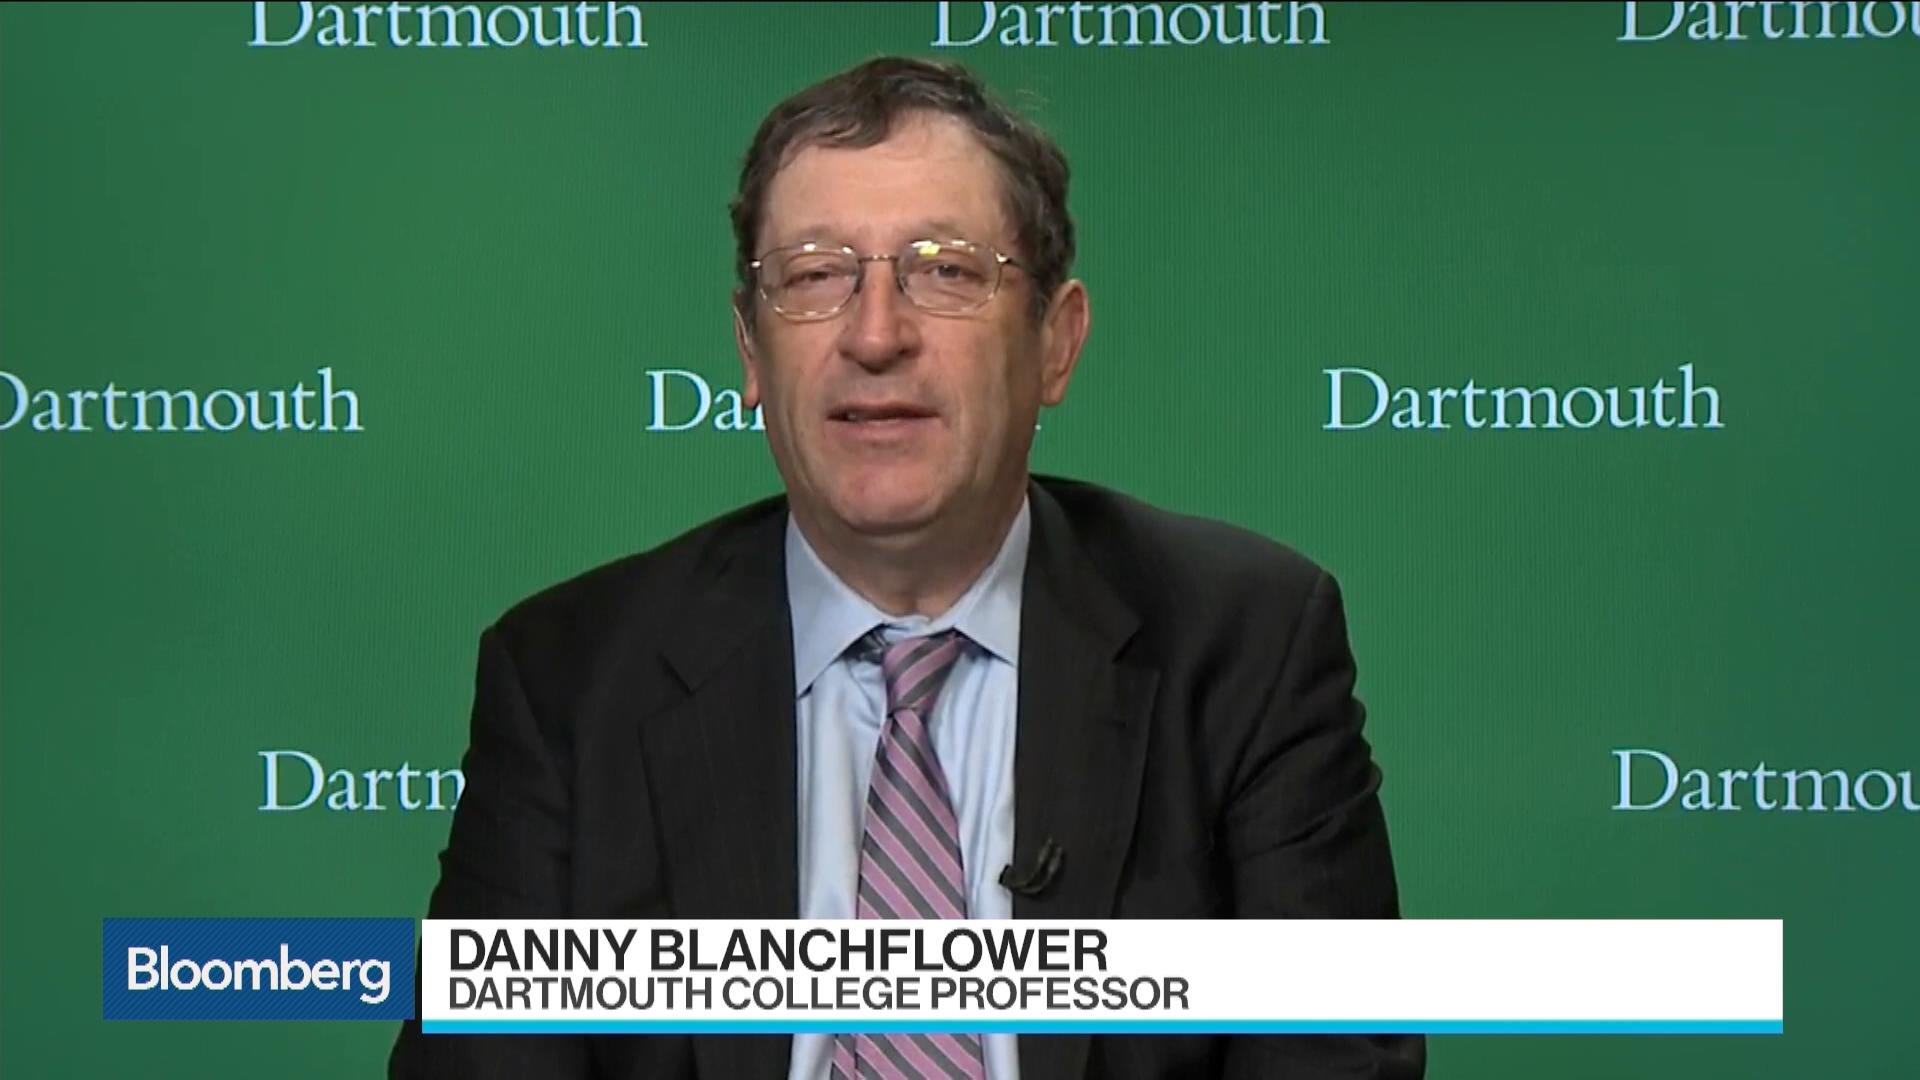 Danny Blanchflower on Brexit Trade Deal Difficulties – Bloomberg